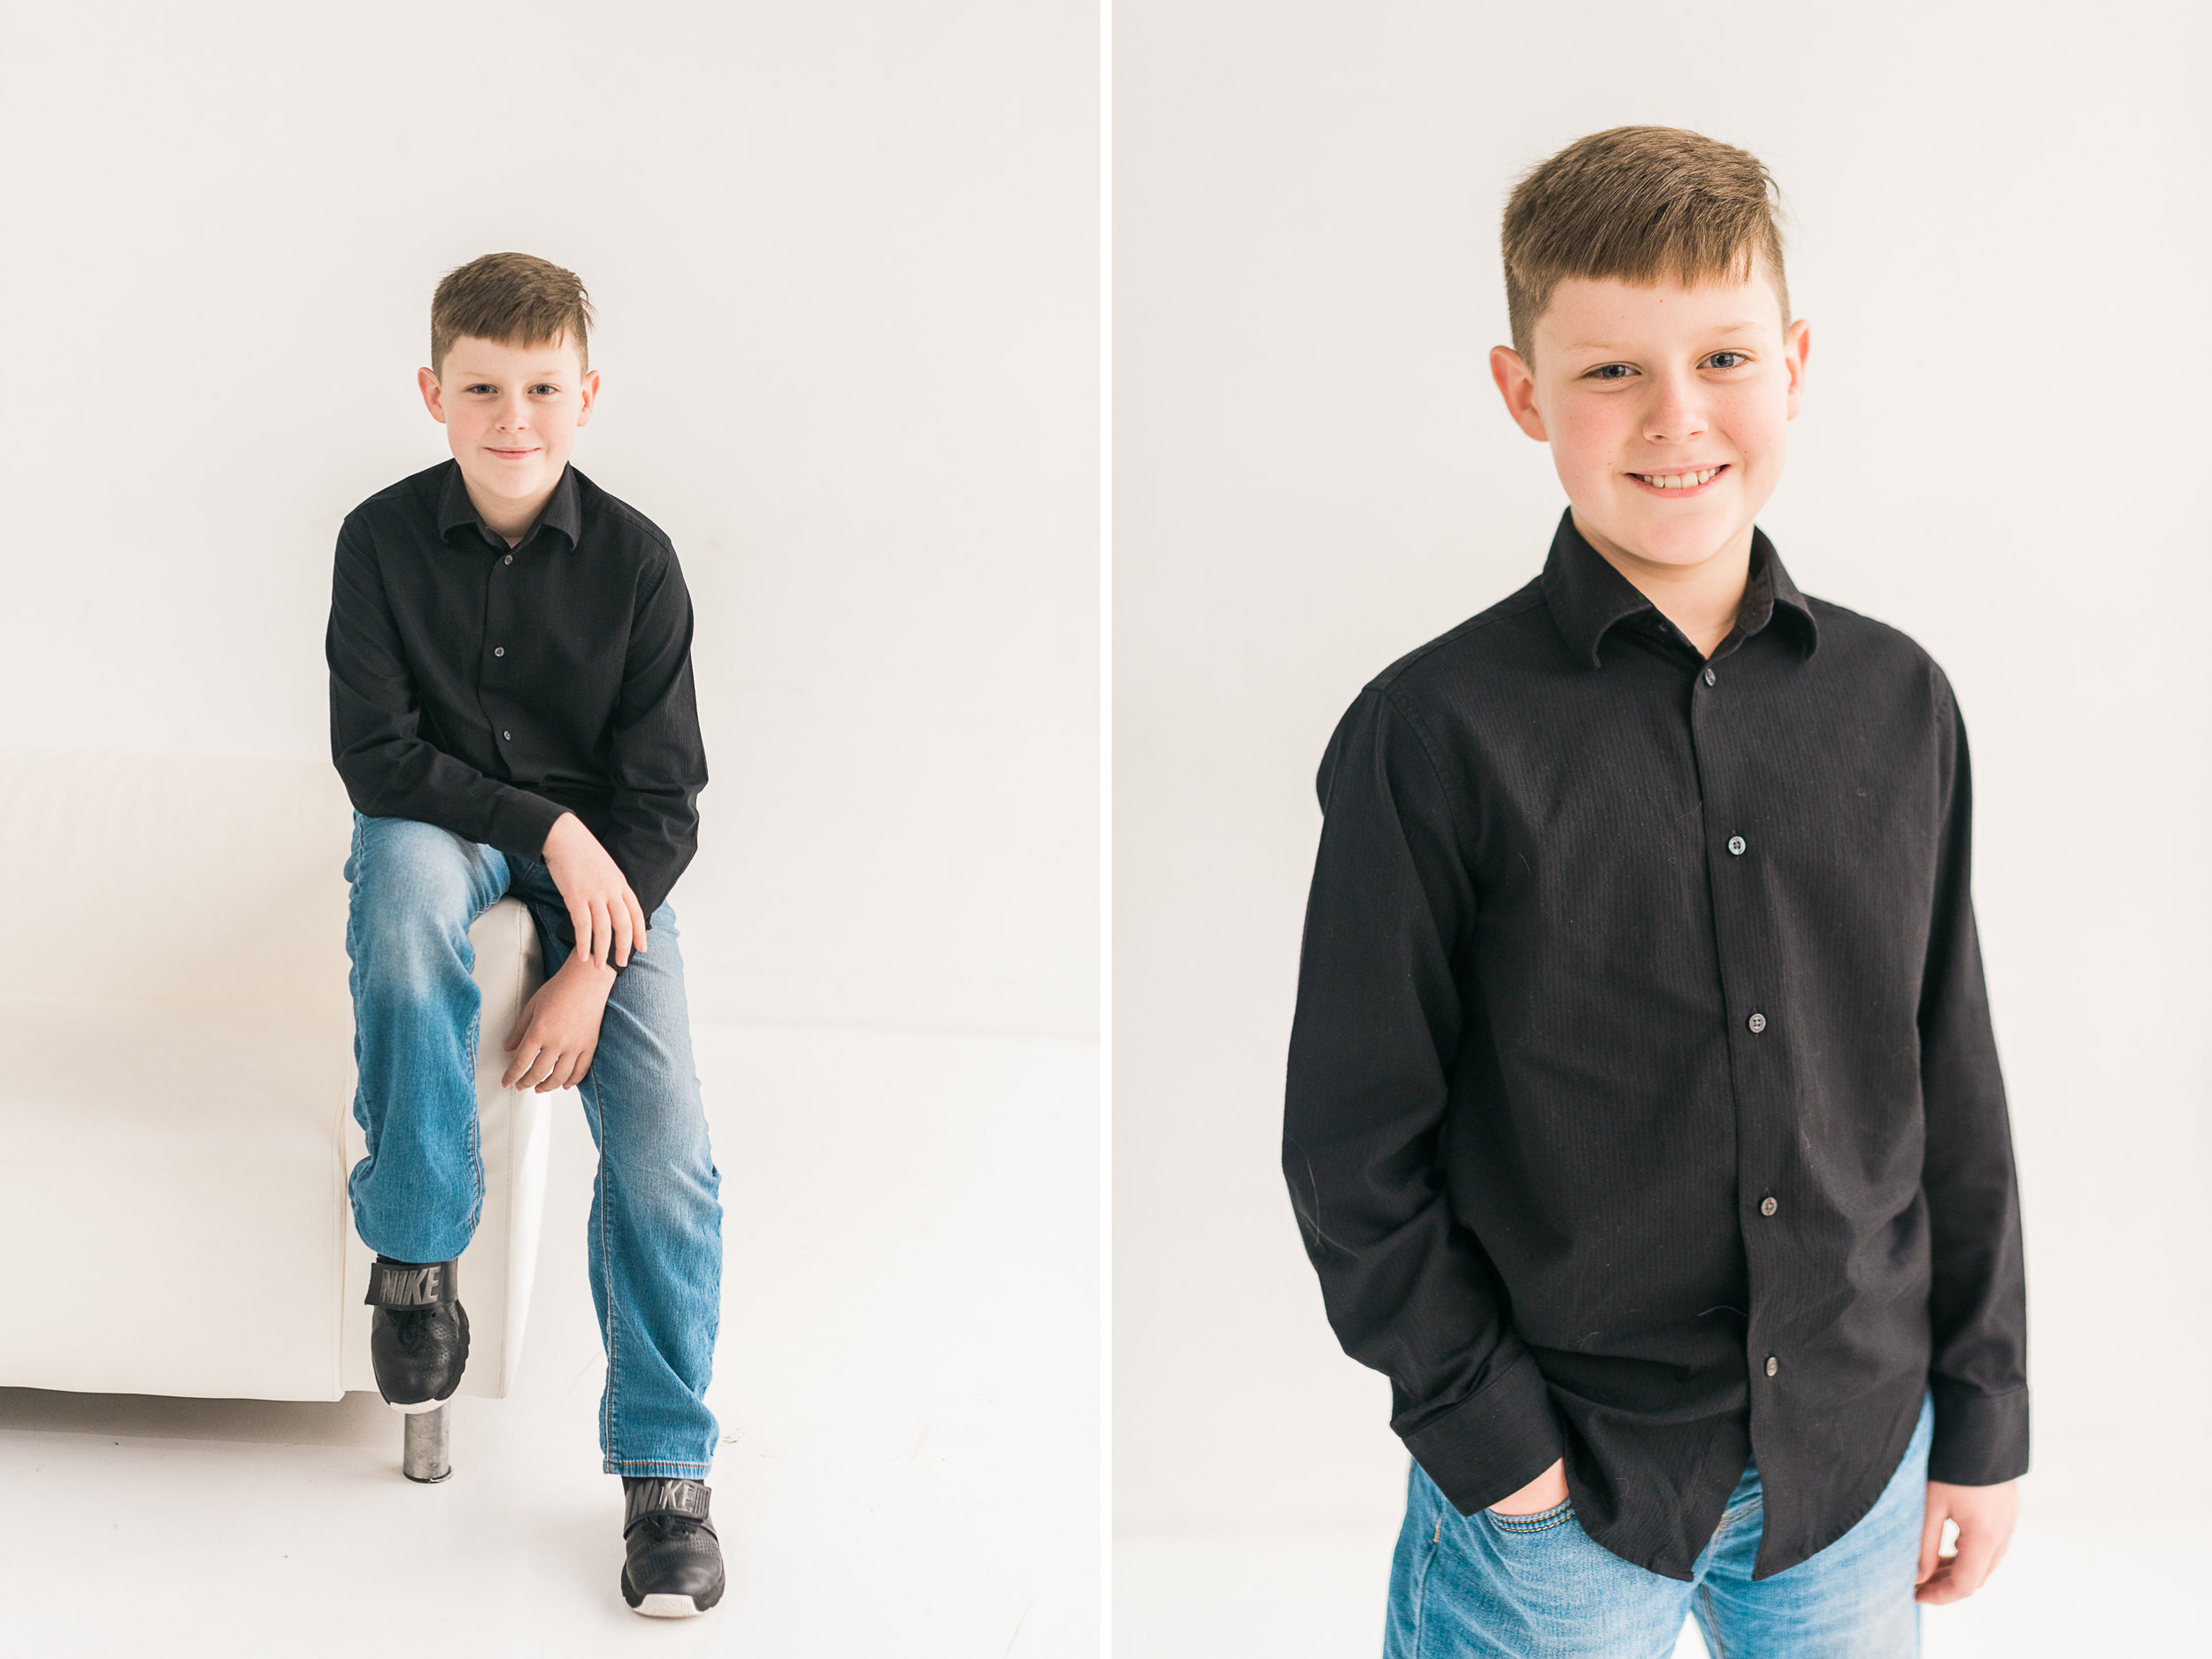 WhiteBackground_HoustonFamilyPortraitPhotographer_ModernStudio_FamilyPhotos4.jpg